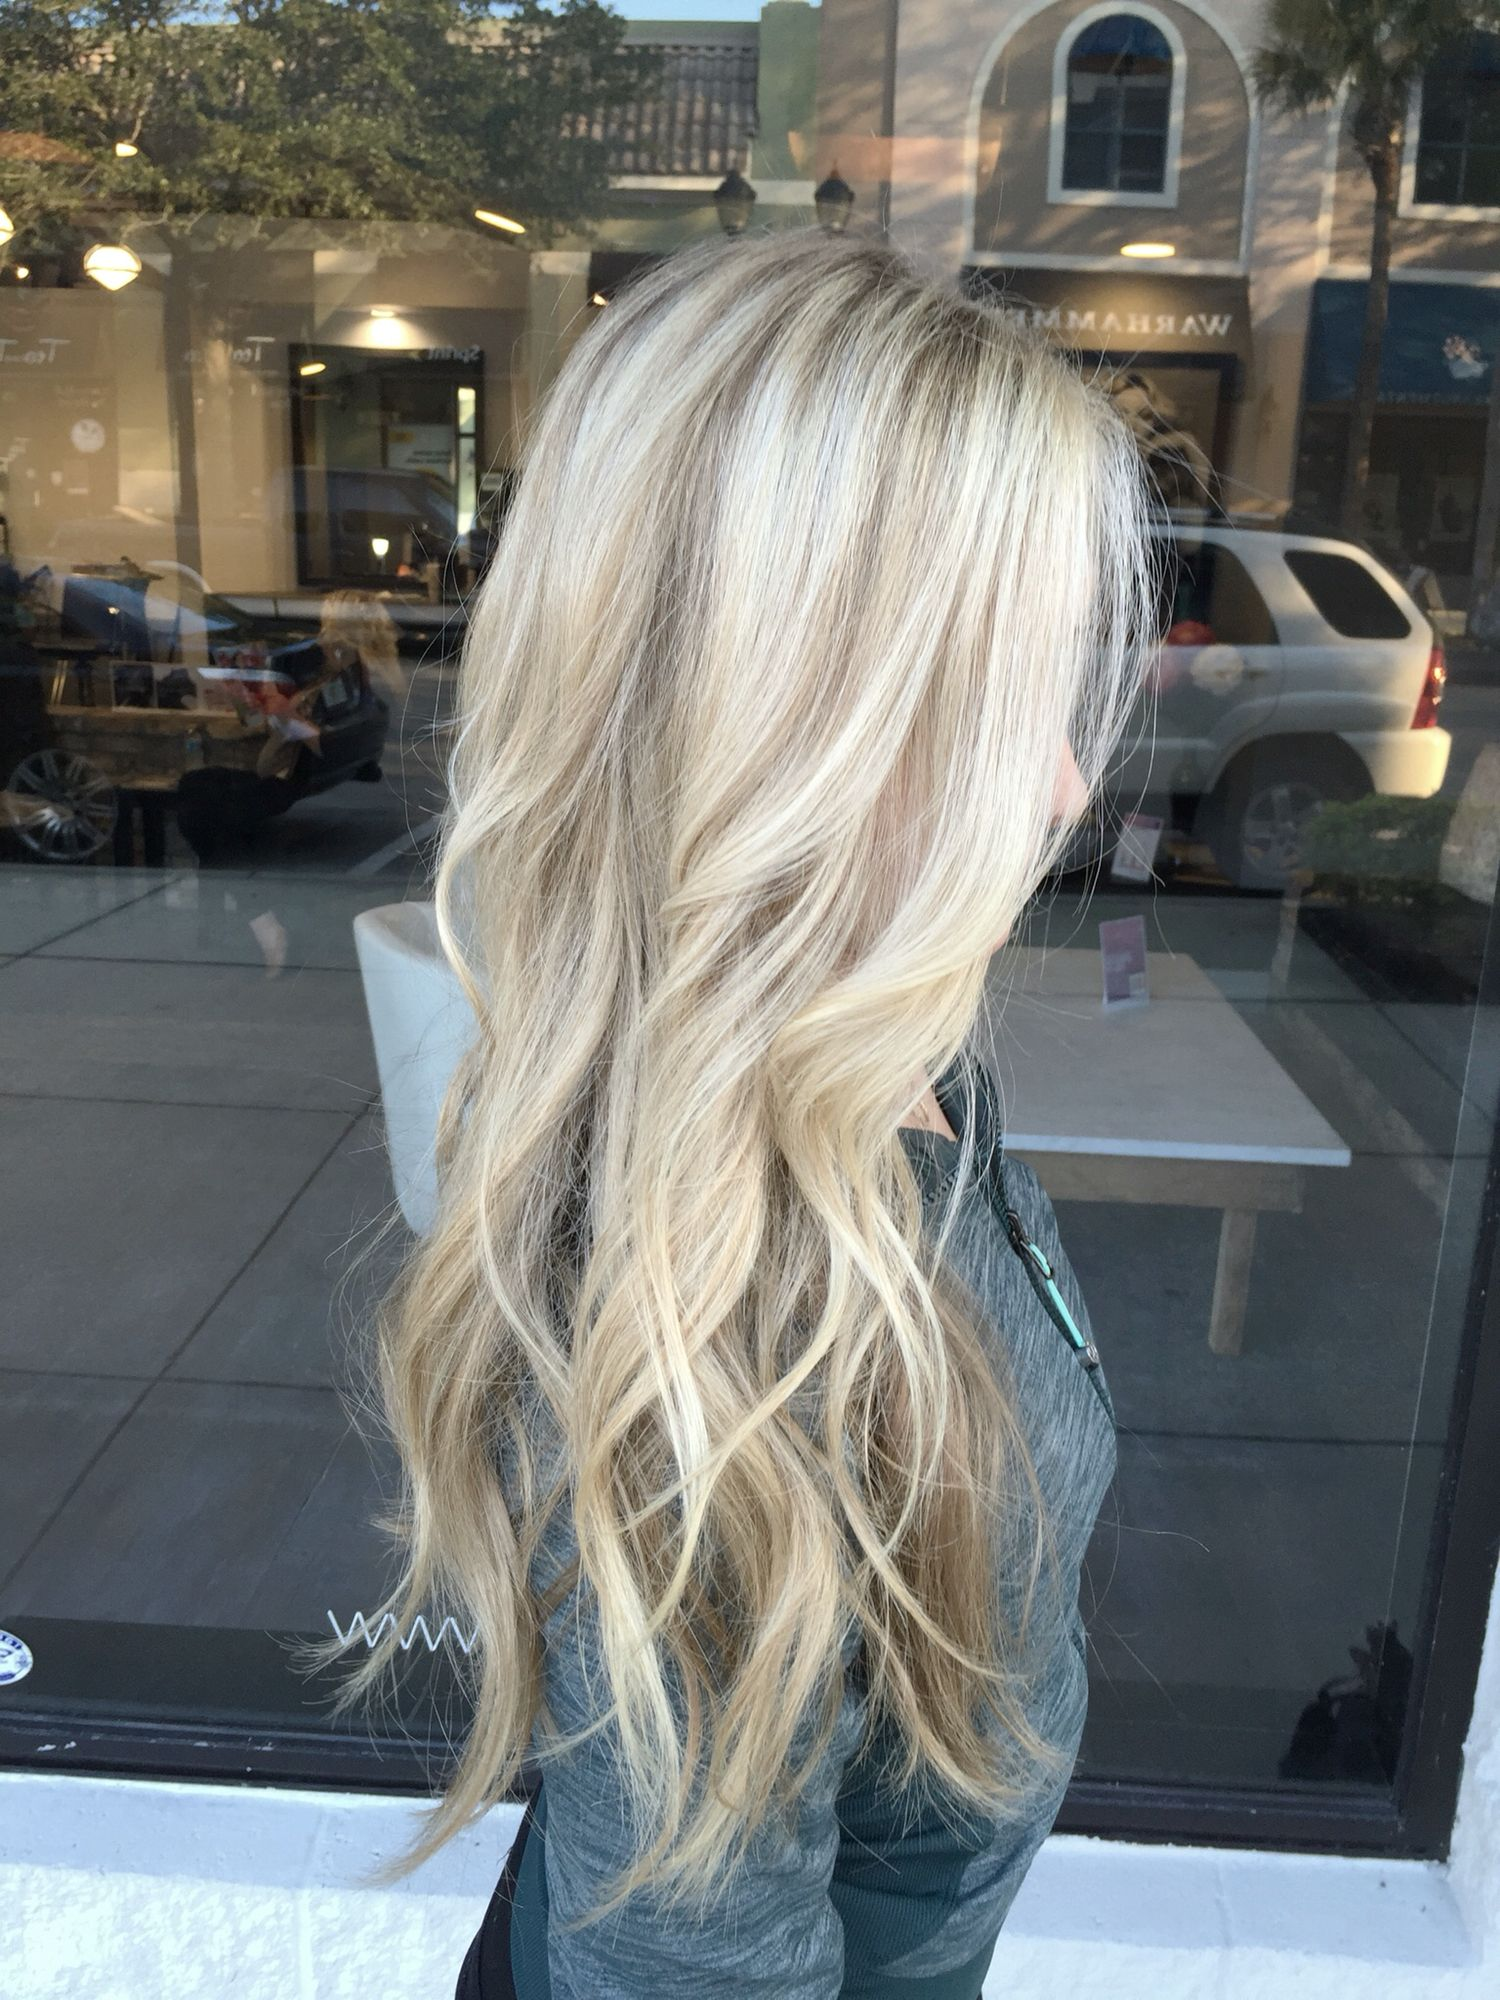 Long blonde hair Hurrrrr Pinterest